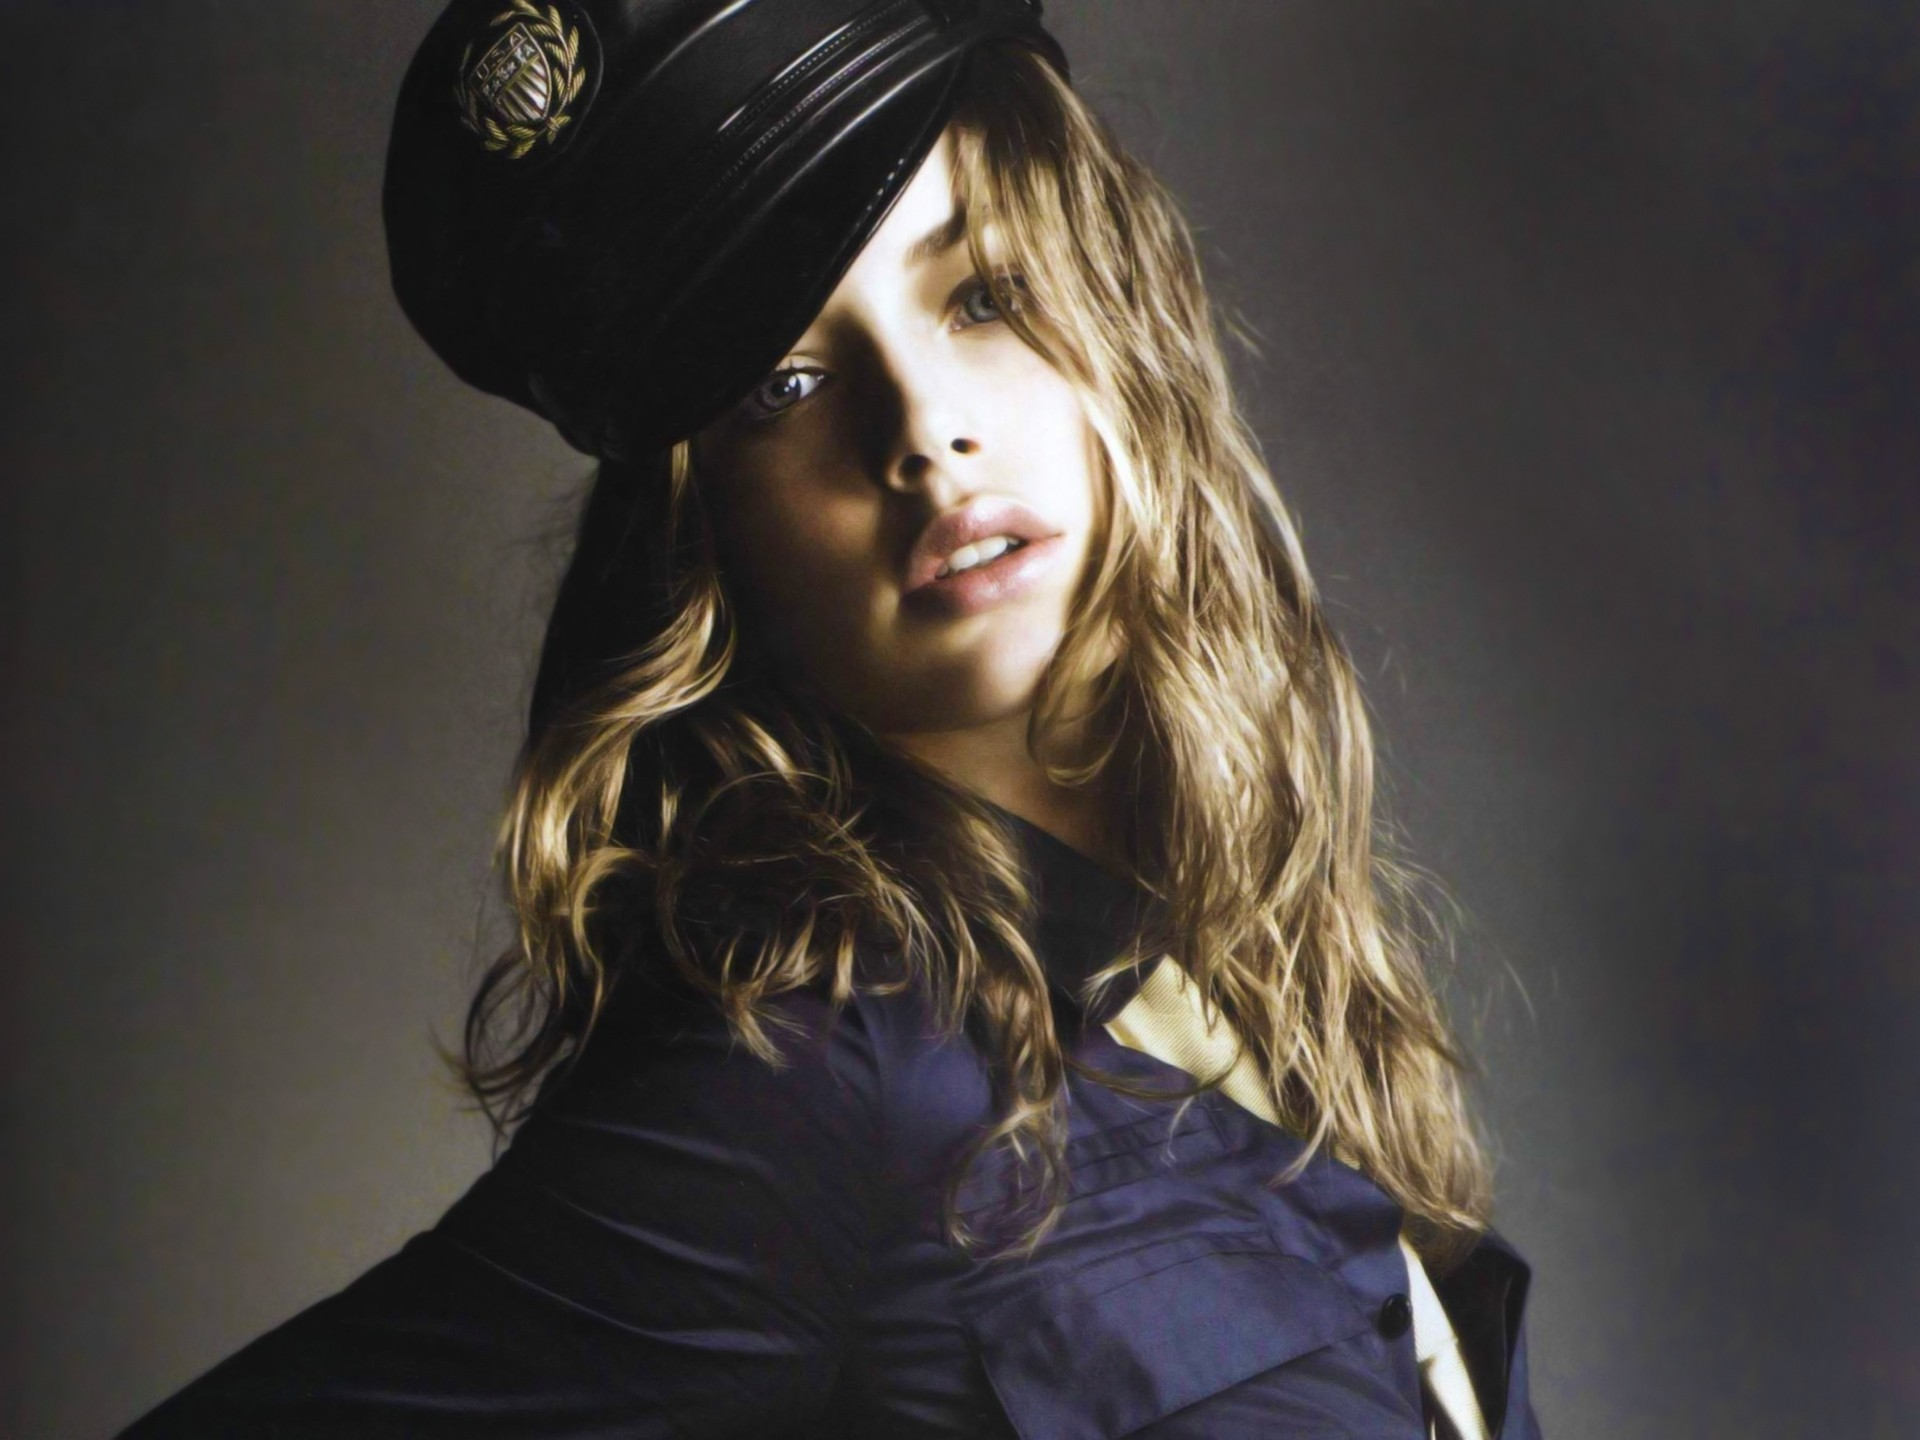 1920x1440 Free doutzen kroes with police hat wallpaper background